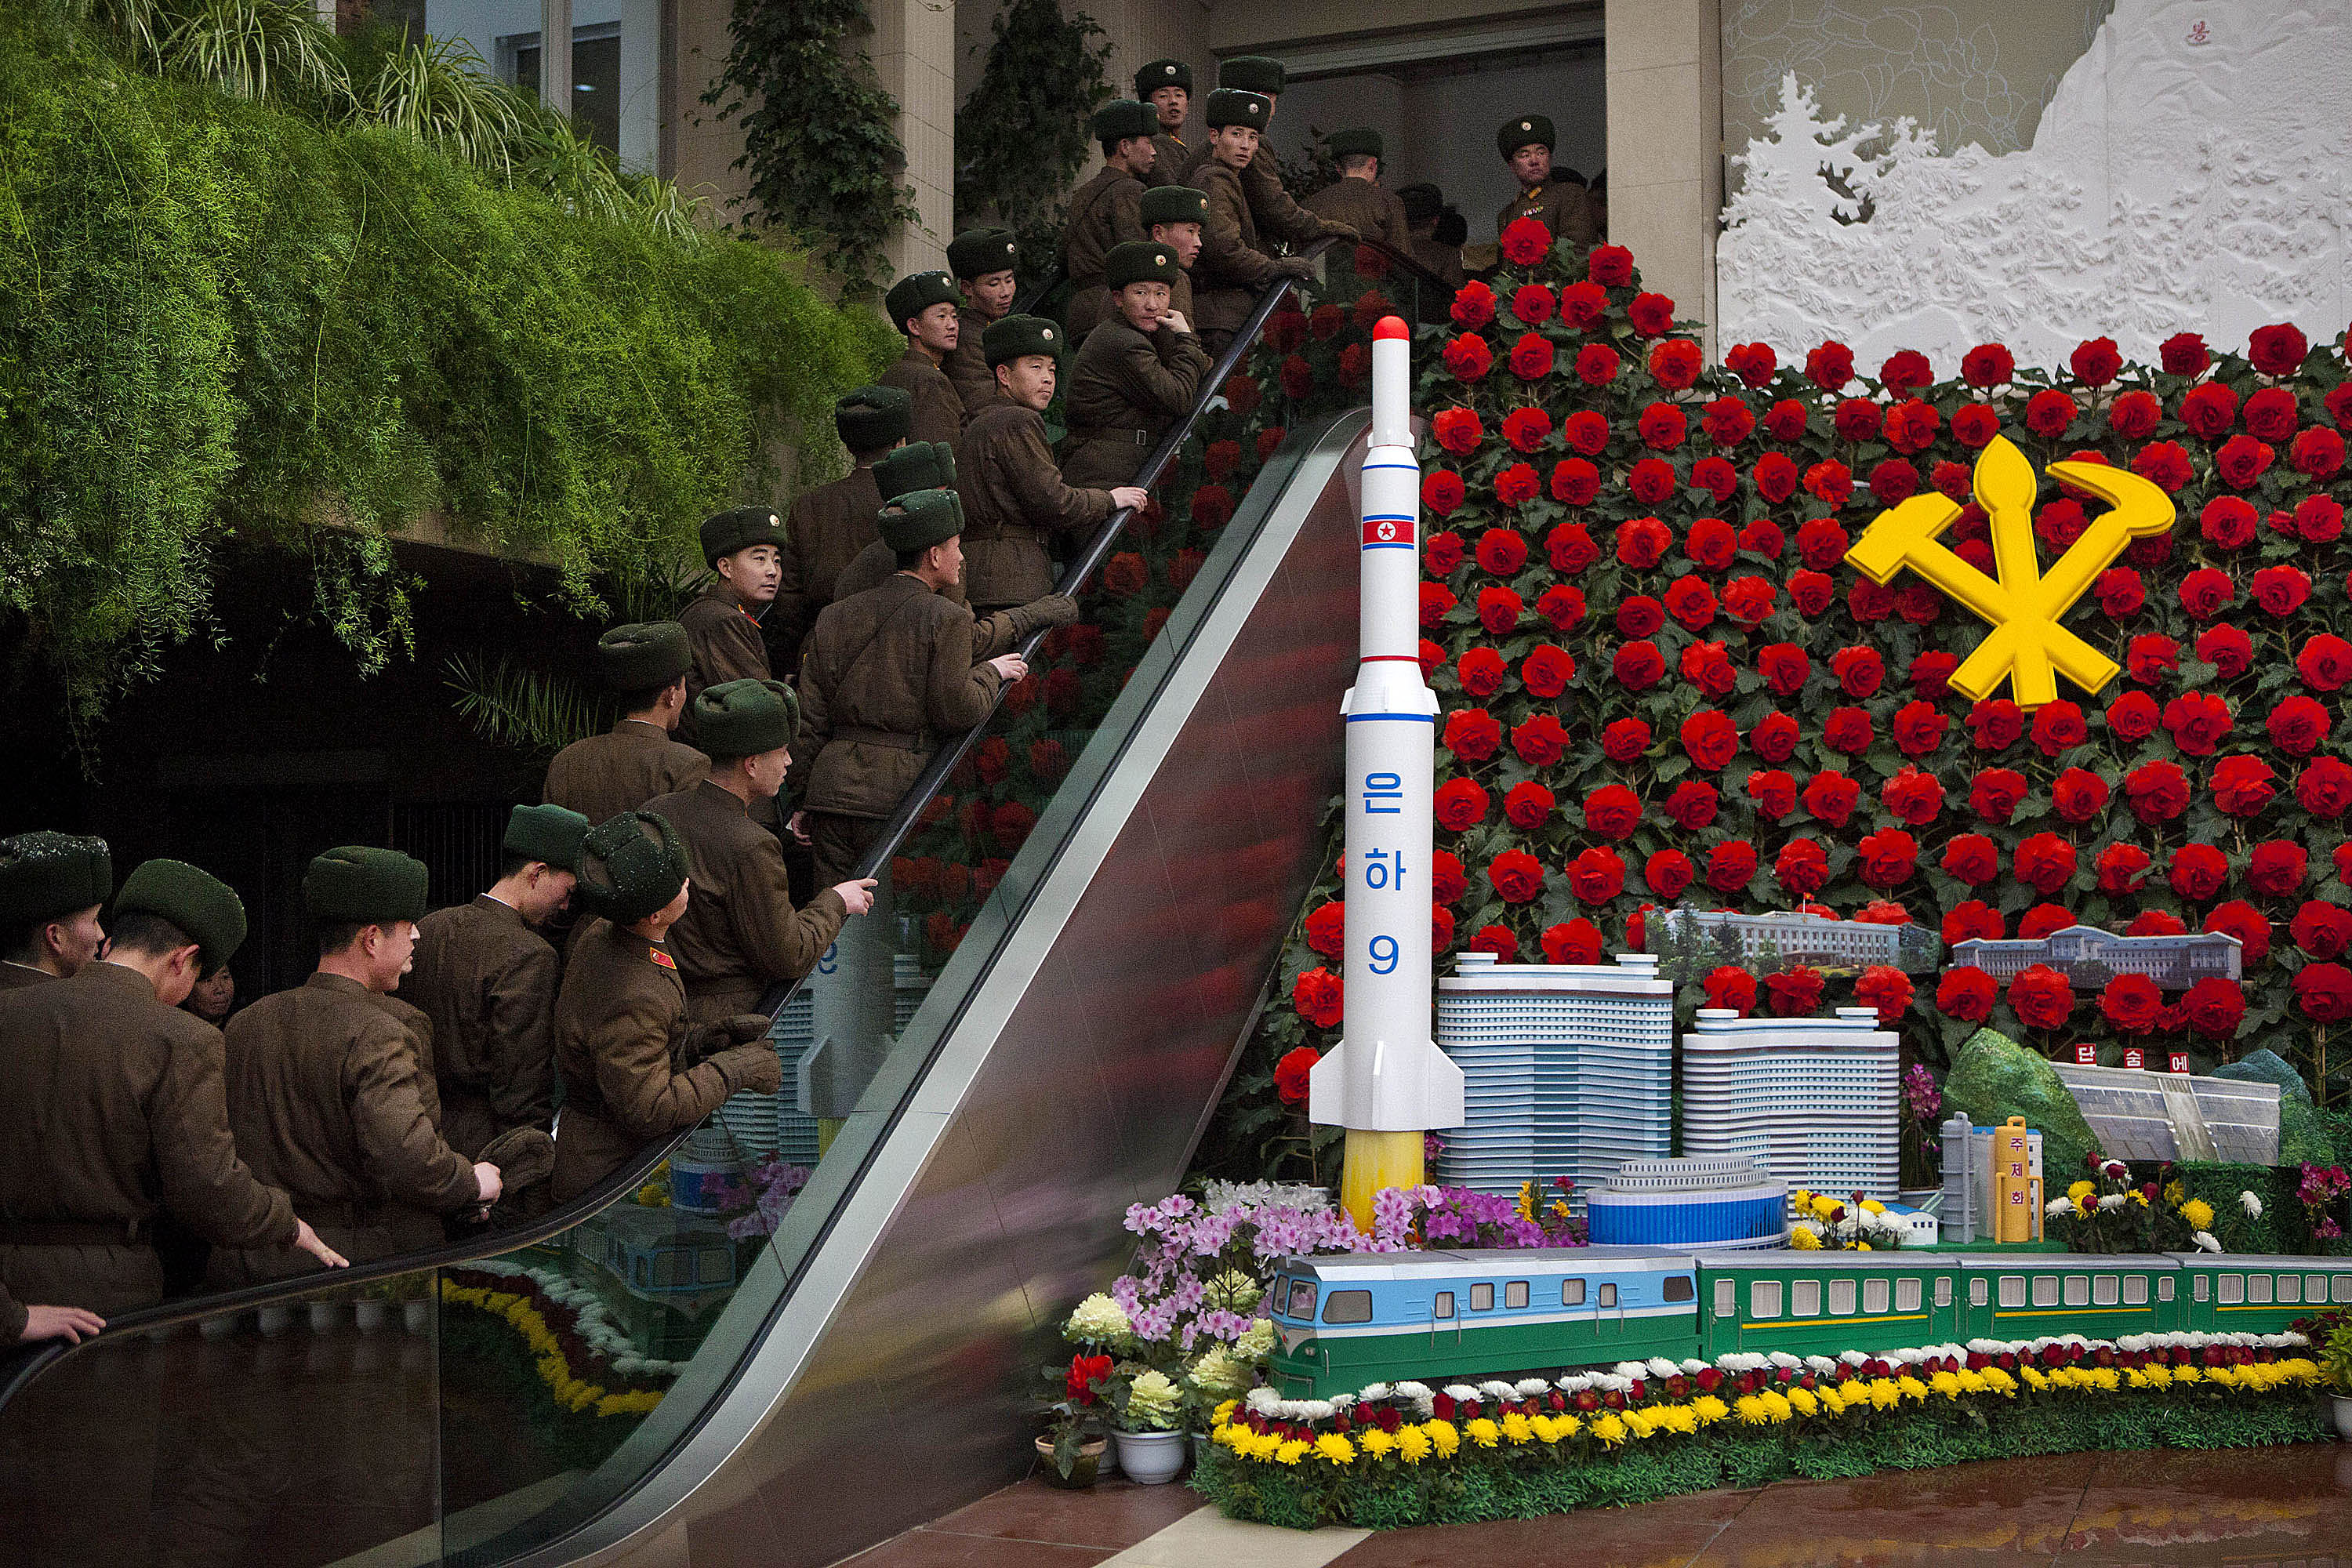 North Korean soldiers ride an escalator past a model of their country's Unha Rocket as they enter an exhibition in Pyongyang on Feb. 17, 2013. (David Guttenfelder/AP)